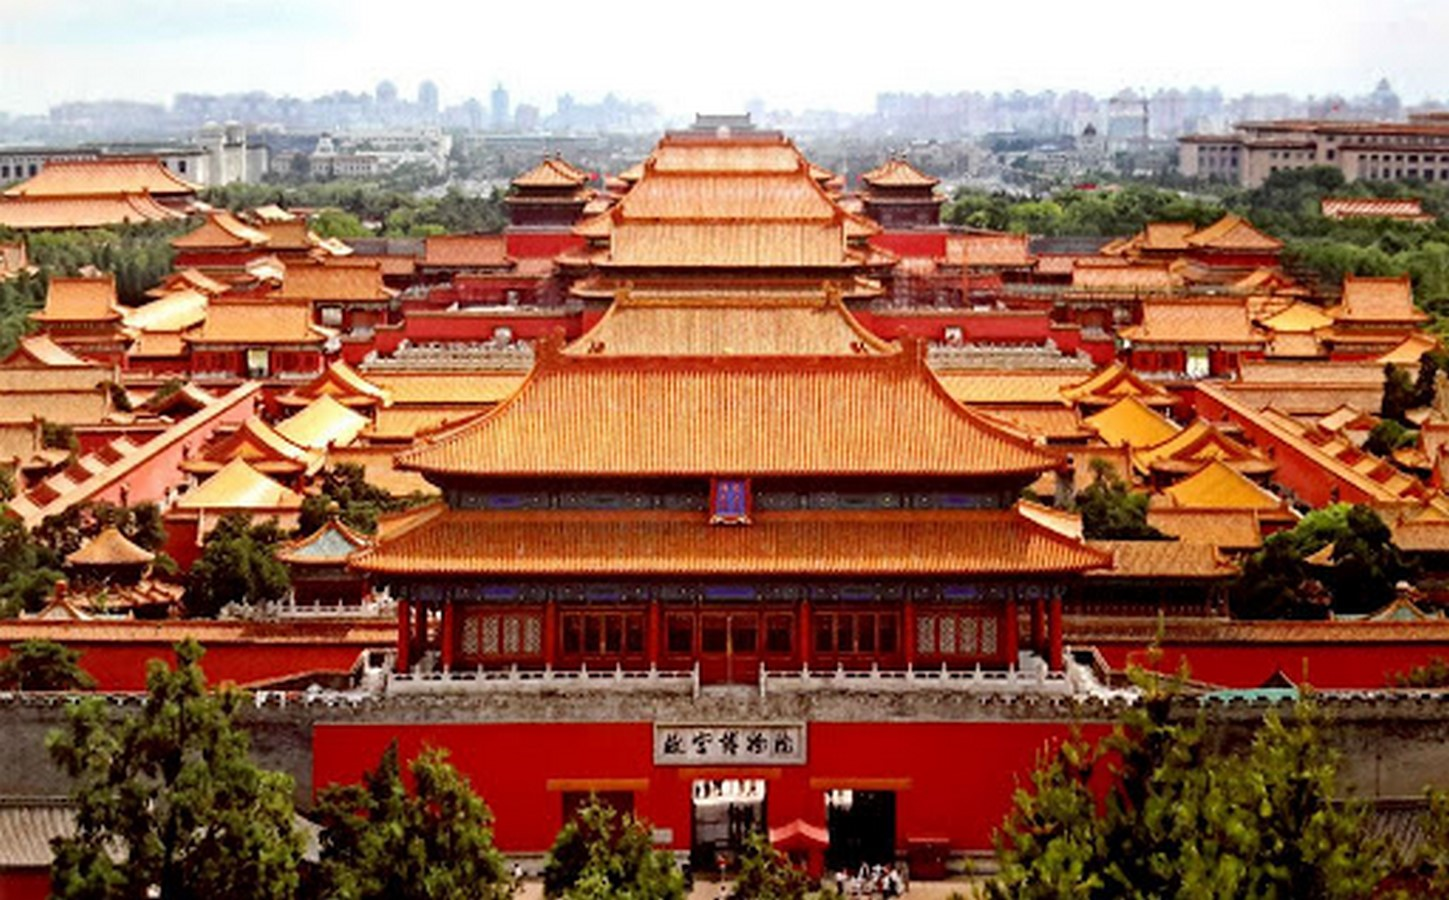 10 Reasons why architects must visit Beijing - Sheet1